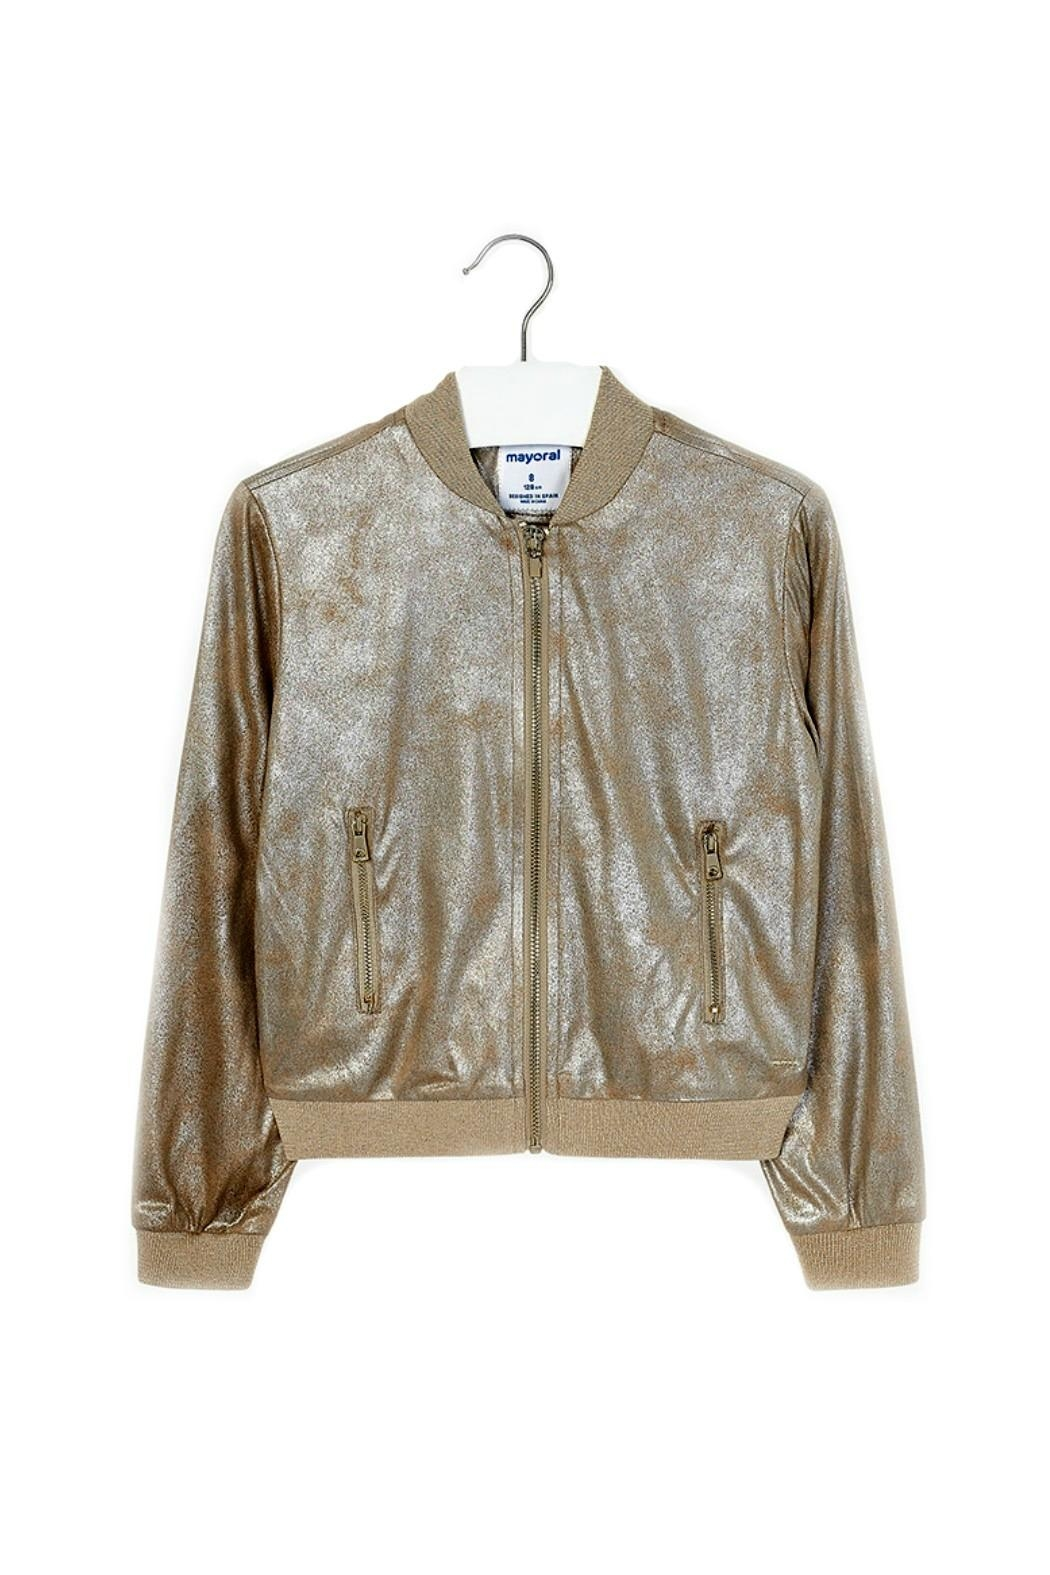 4f27ce14236 Mayoral Girls-Metallic-Gold-Bomber-Style-Jacket from Minnesota by ...